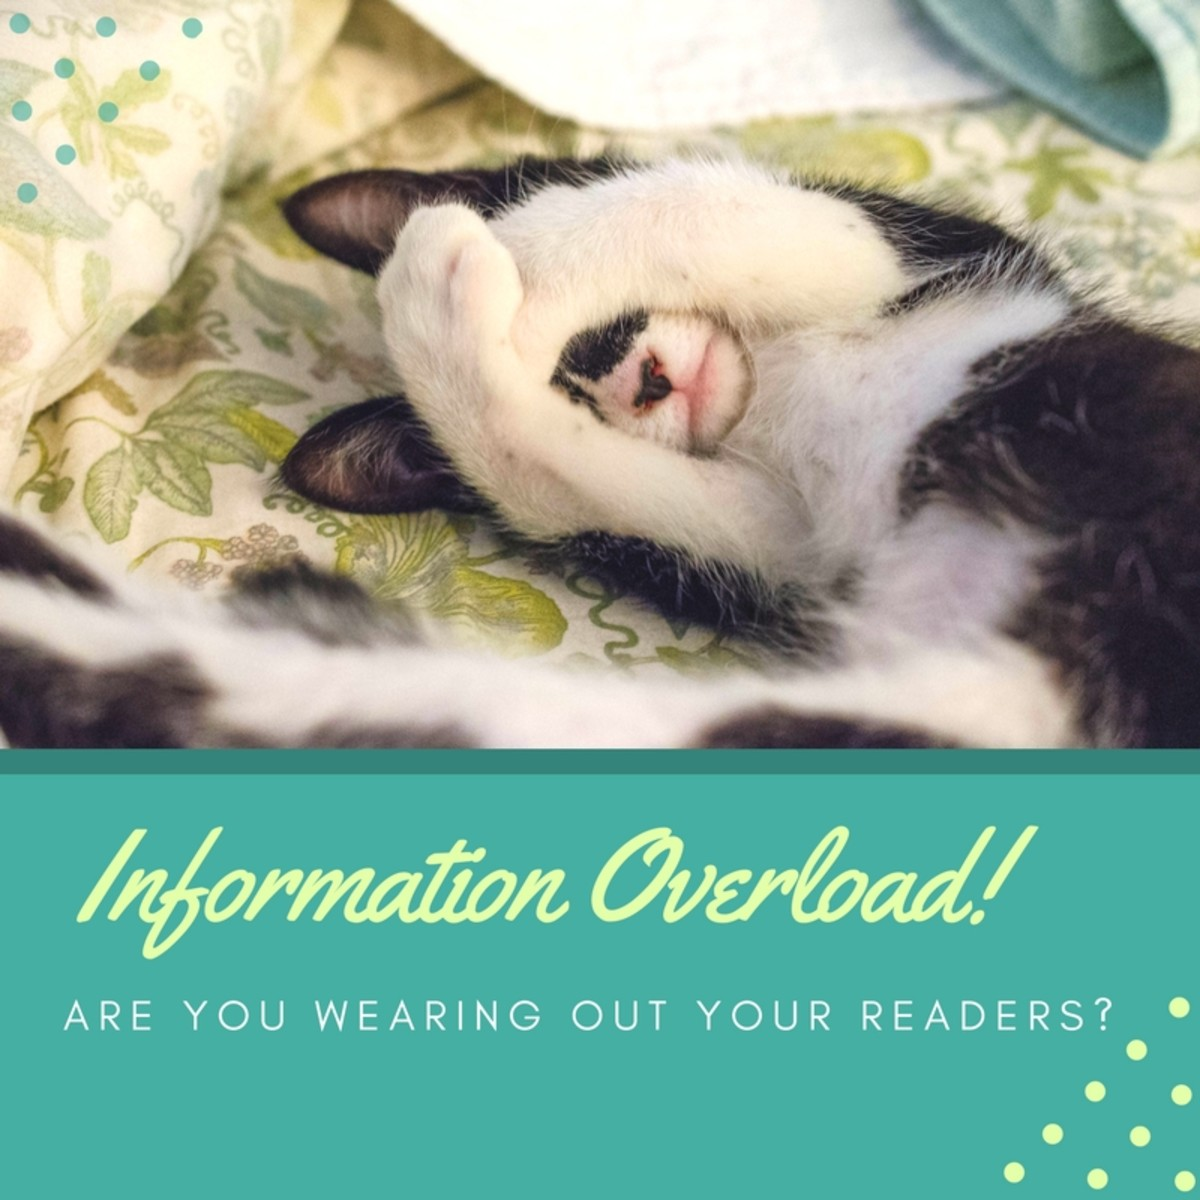 Information Overload: Are You Wearing Out Your Readers?